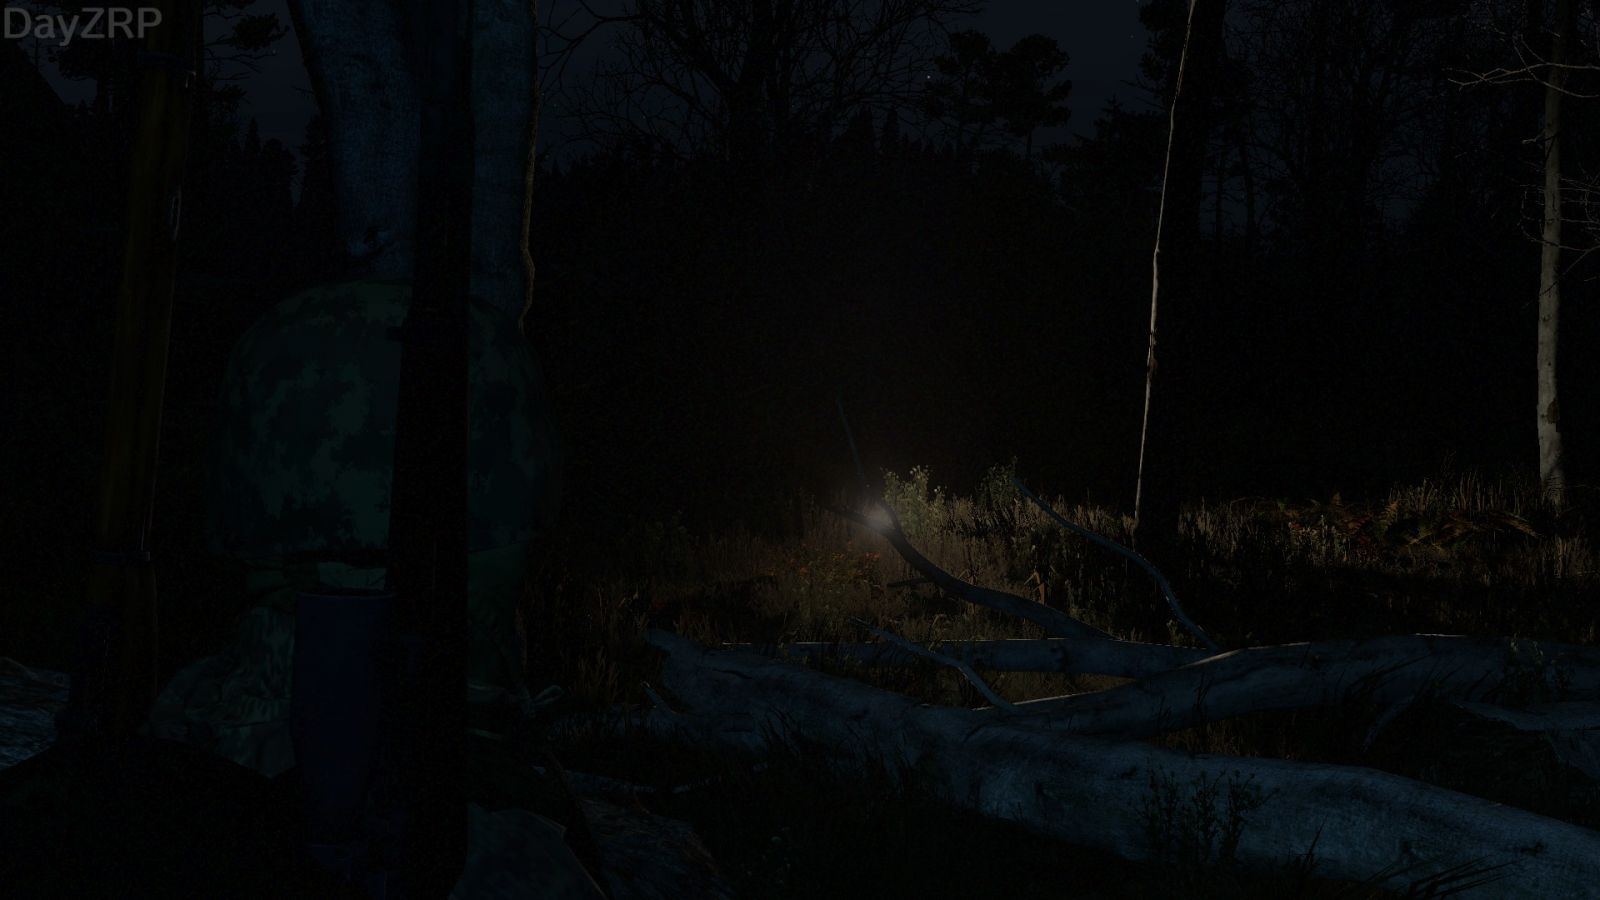 A light in the woods